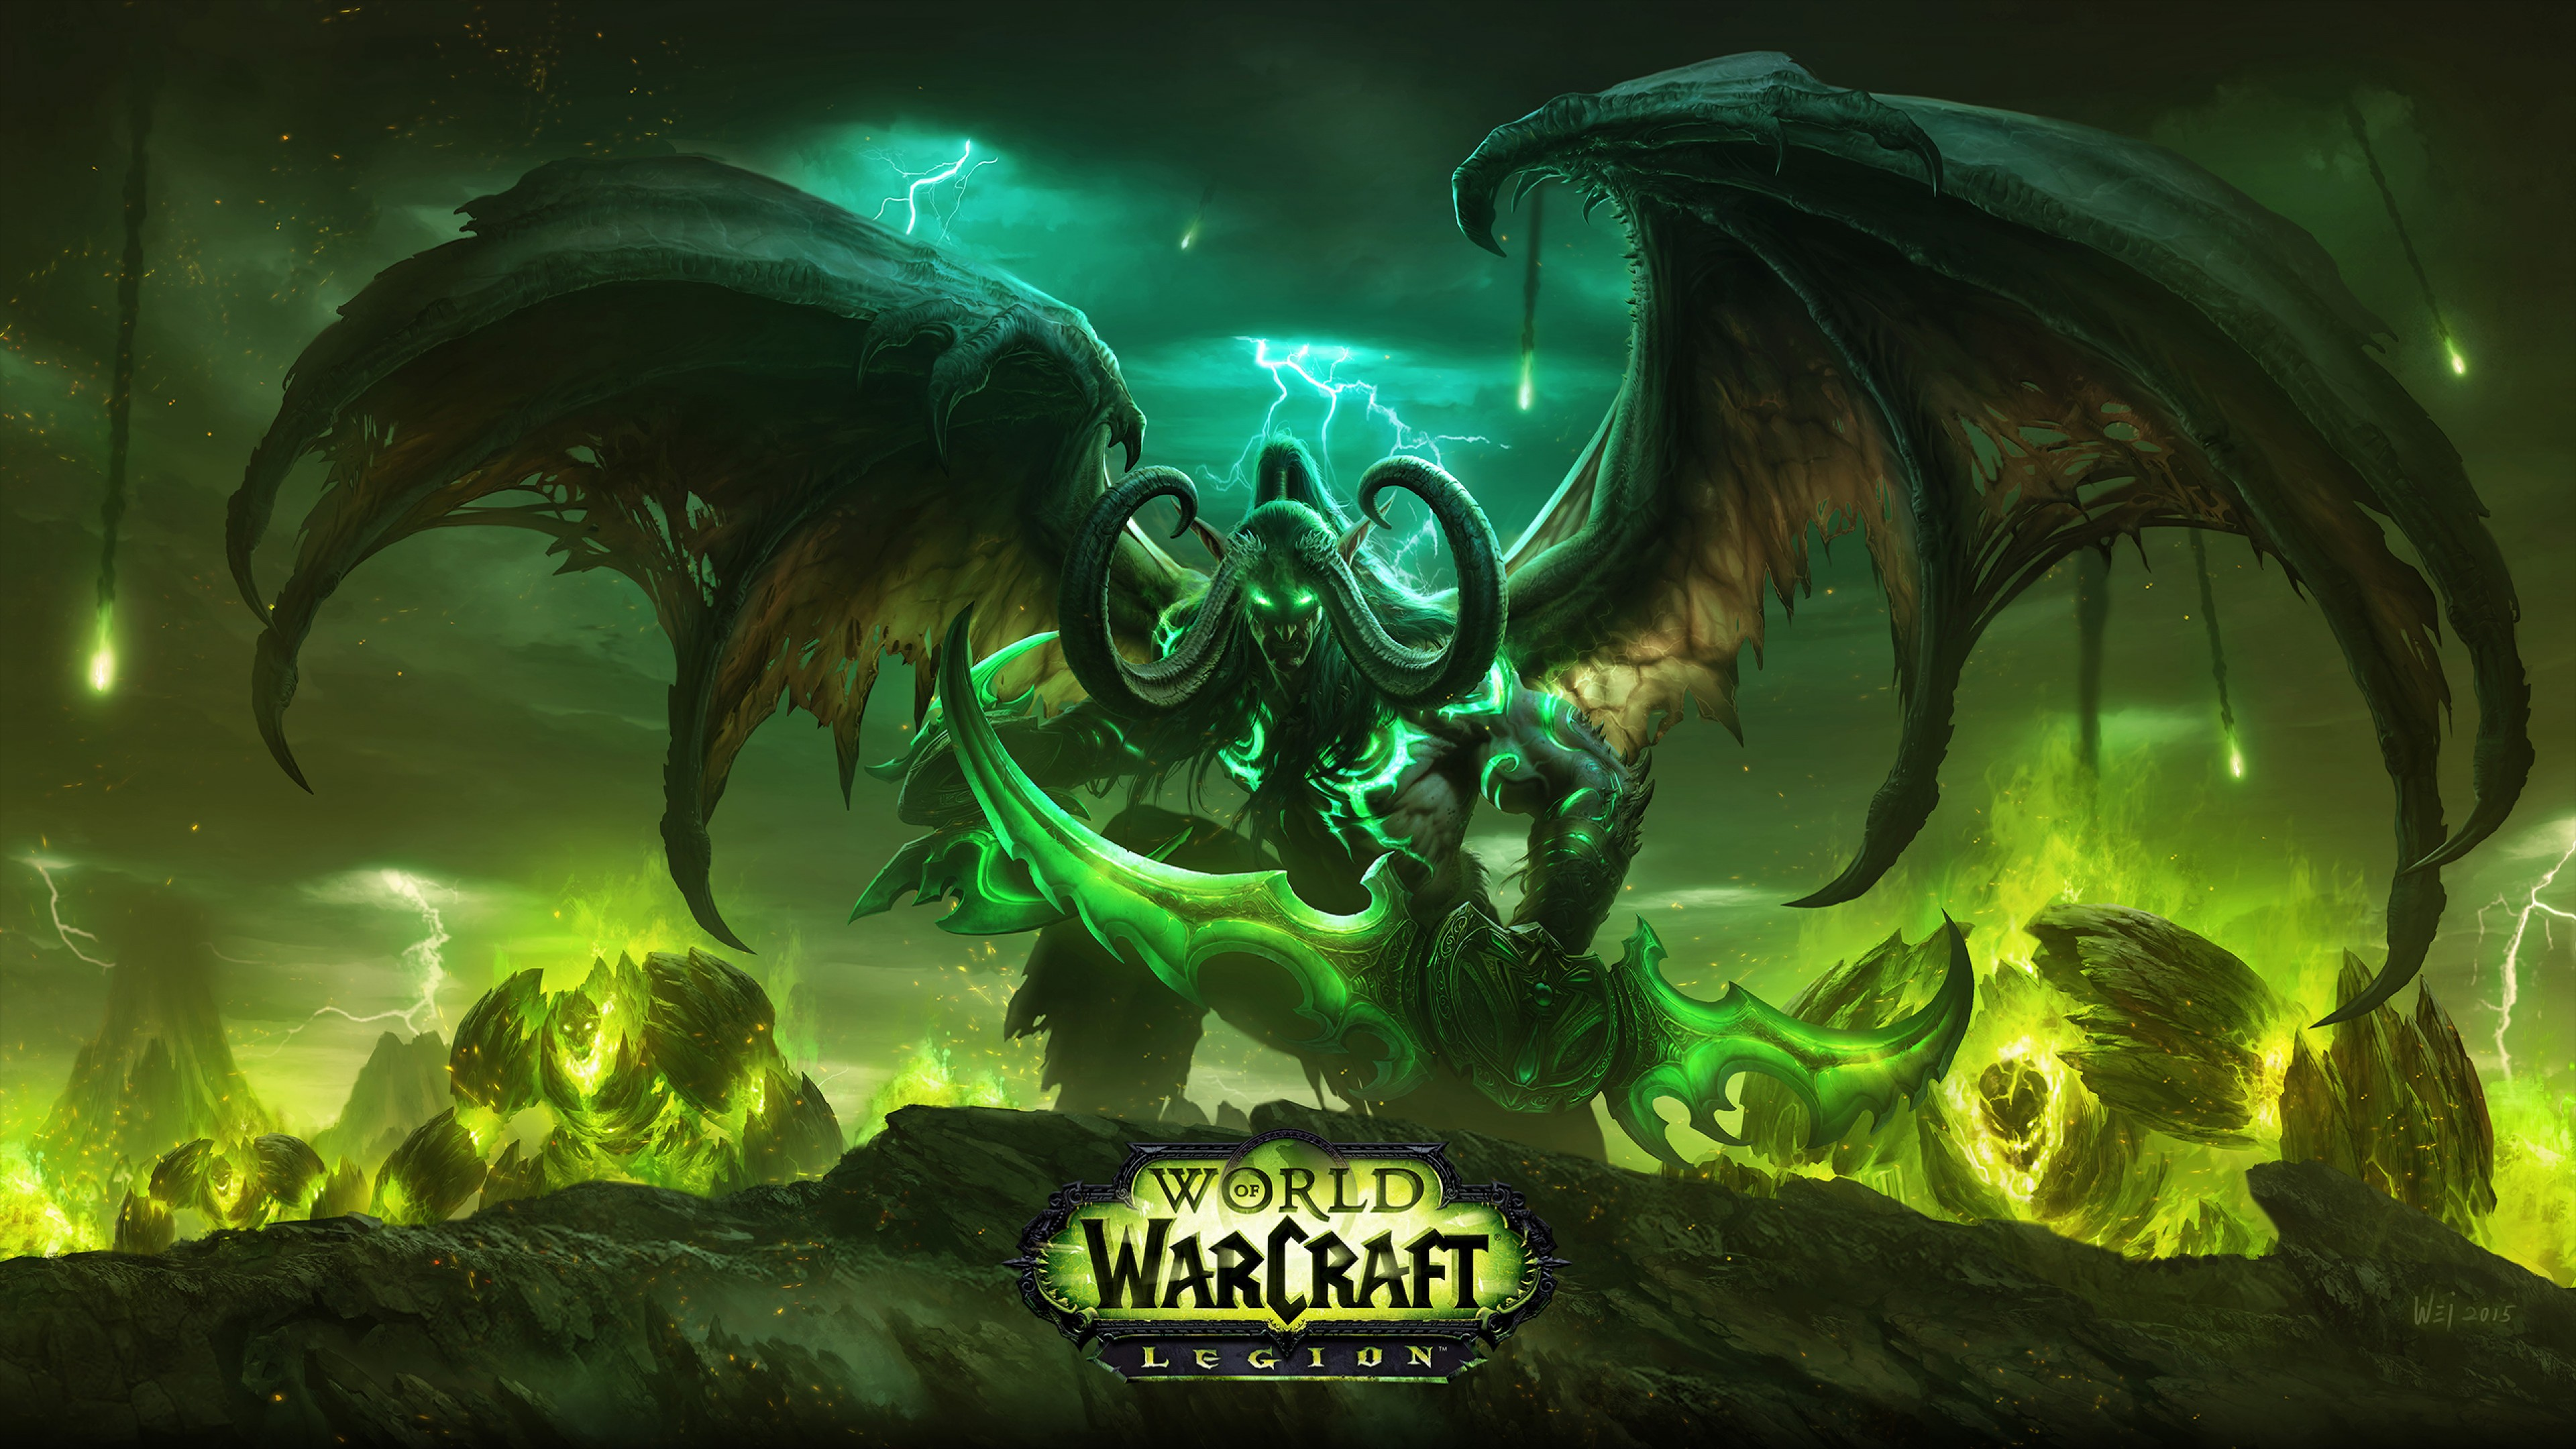 World Of Warcraft Wow Legion Hd Wallpaper for Desktop and Mobiles